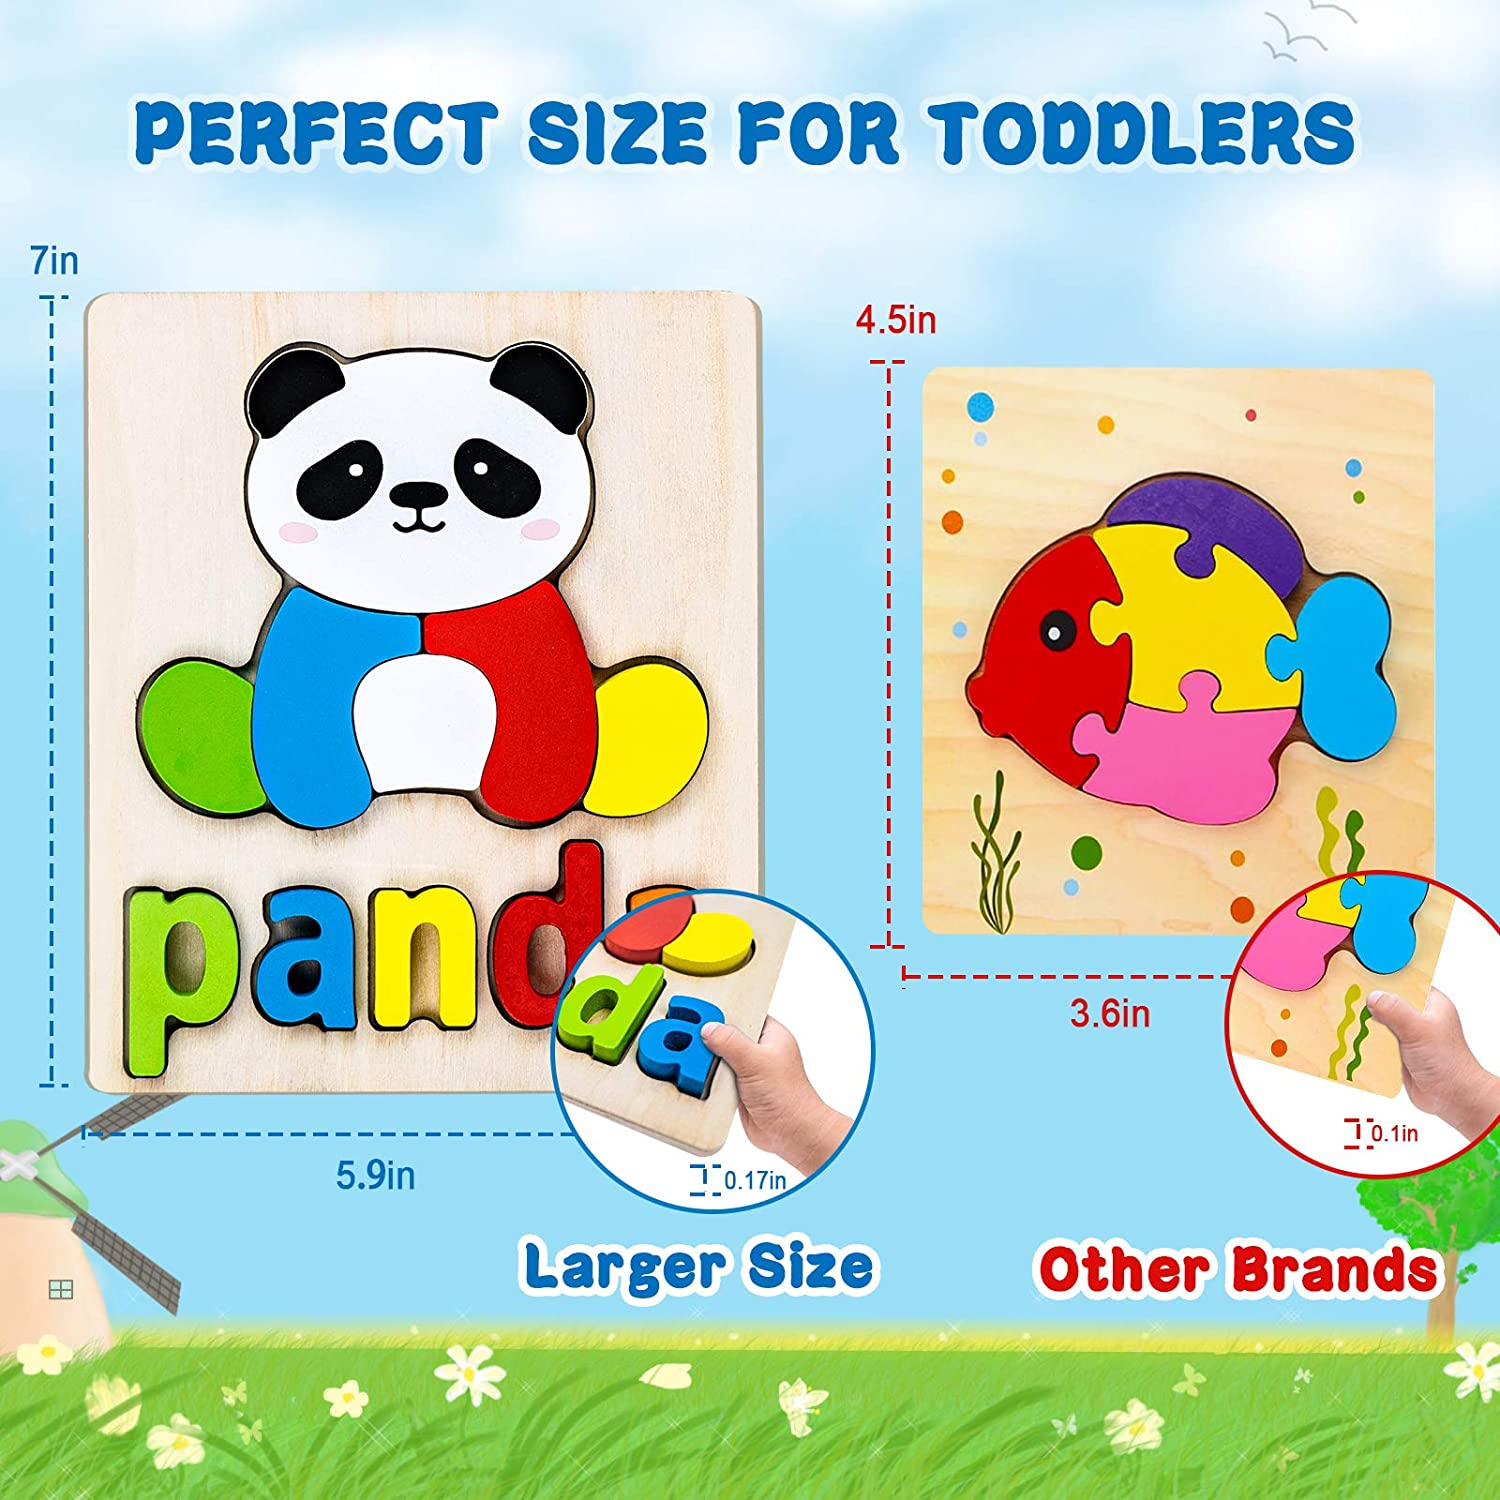 Wooden Jigsaw Peg Puzzles for Toddlers Kids 1 2 3 4 Years Old Montessori Educational Boys Girls Eco Friendly Child Gifts Travel with Animal Shape and Alphabet Spelling Puzzles Preschool Learning Toys